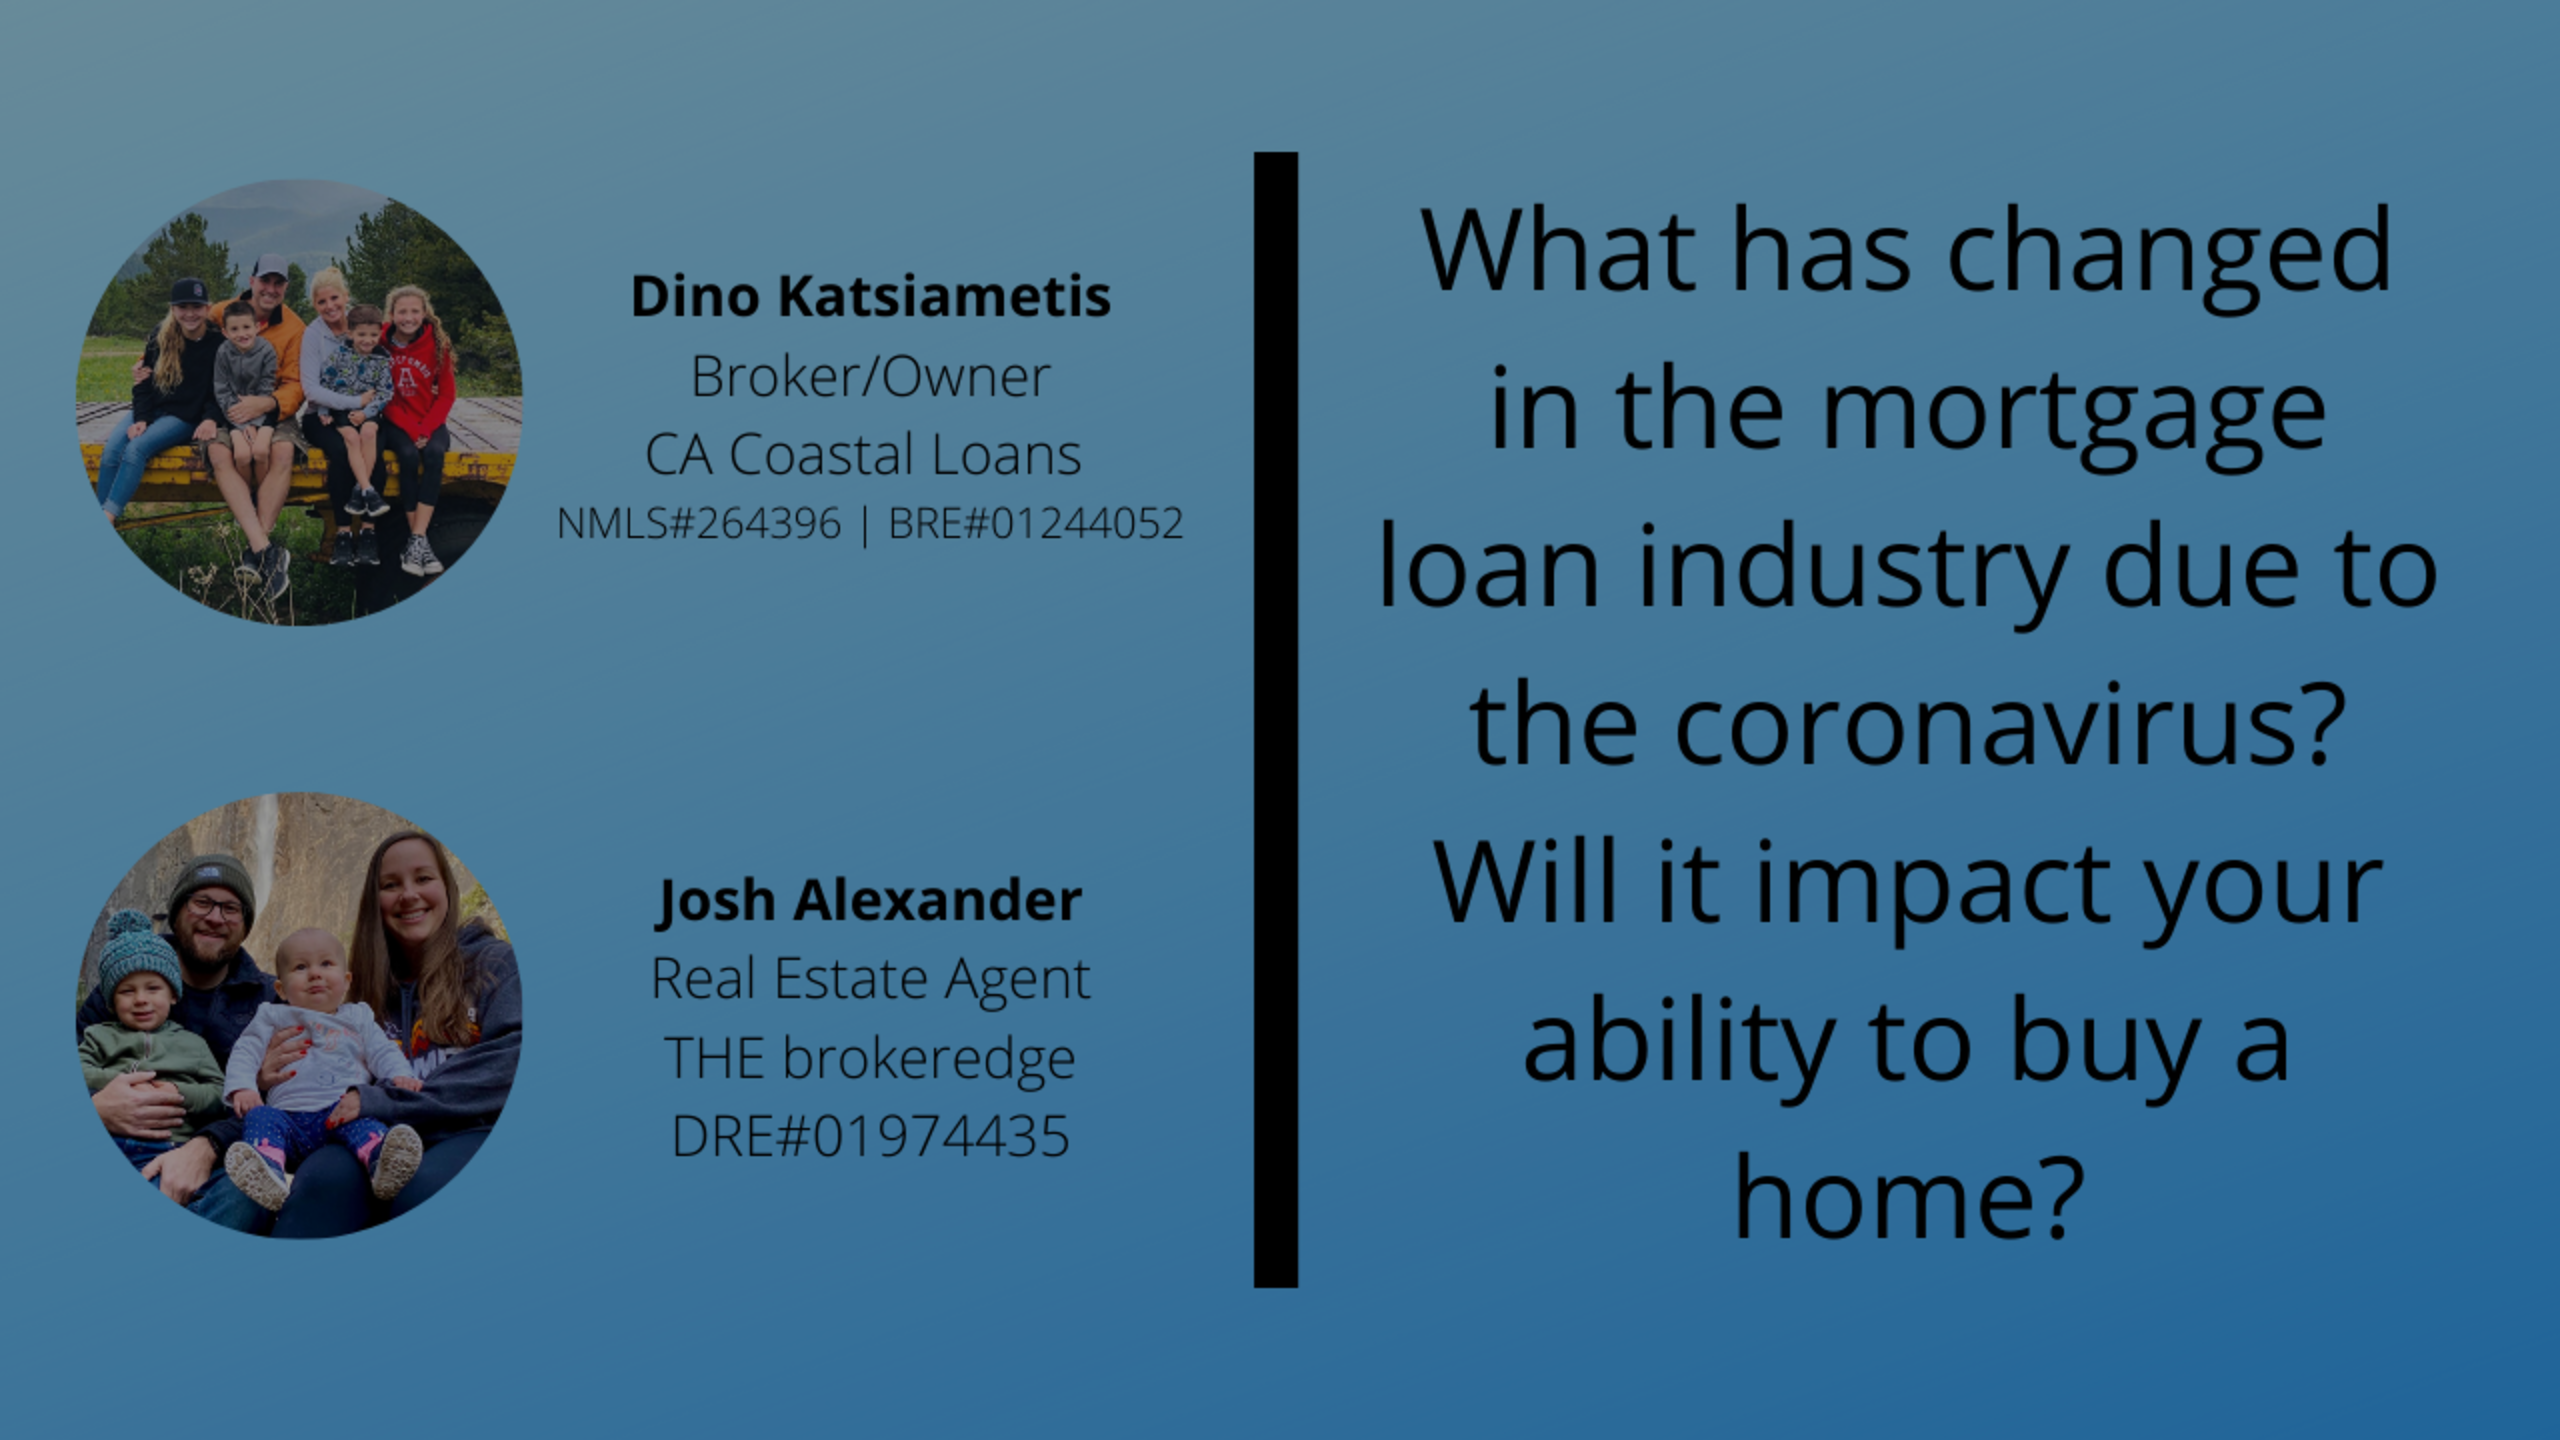 What has changed in the mortgage loan industry due to the coronavirus?